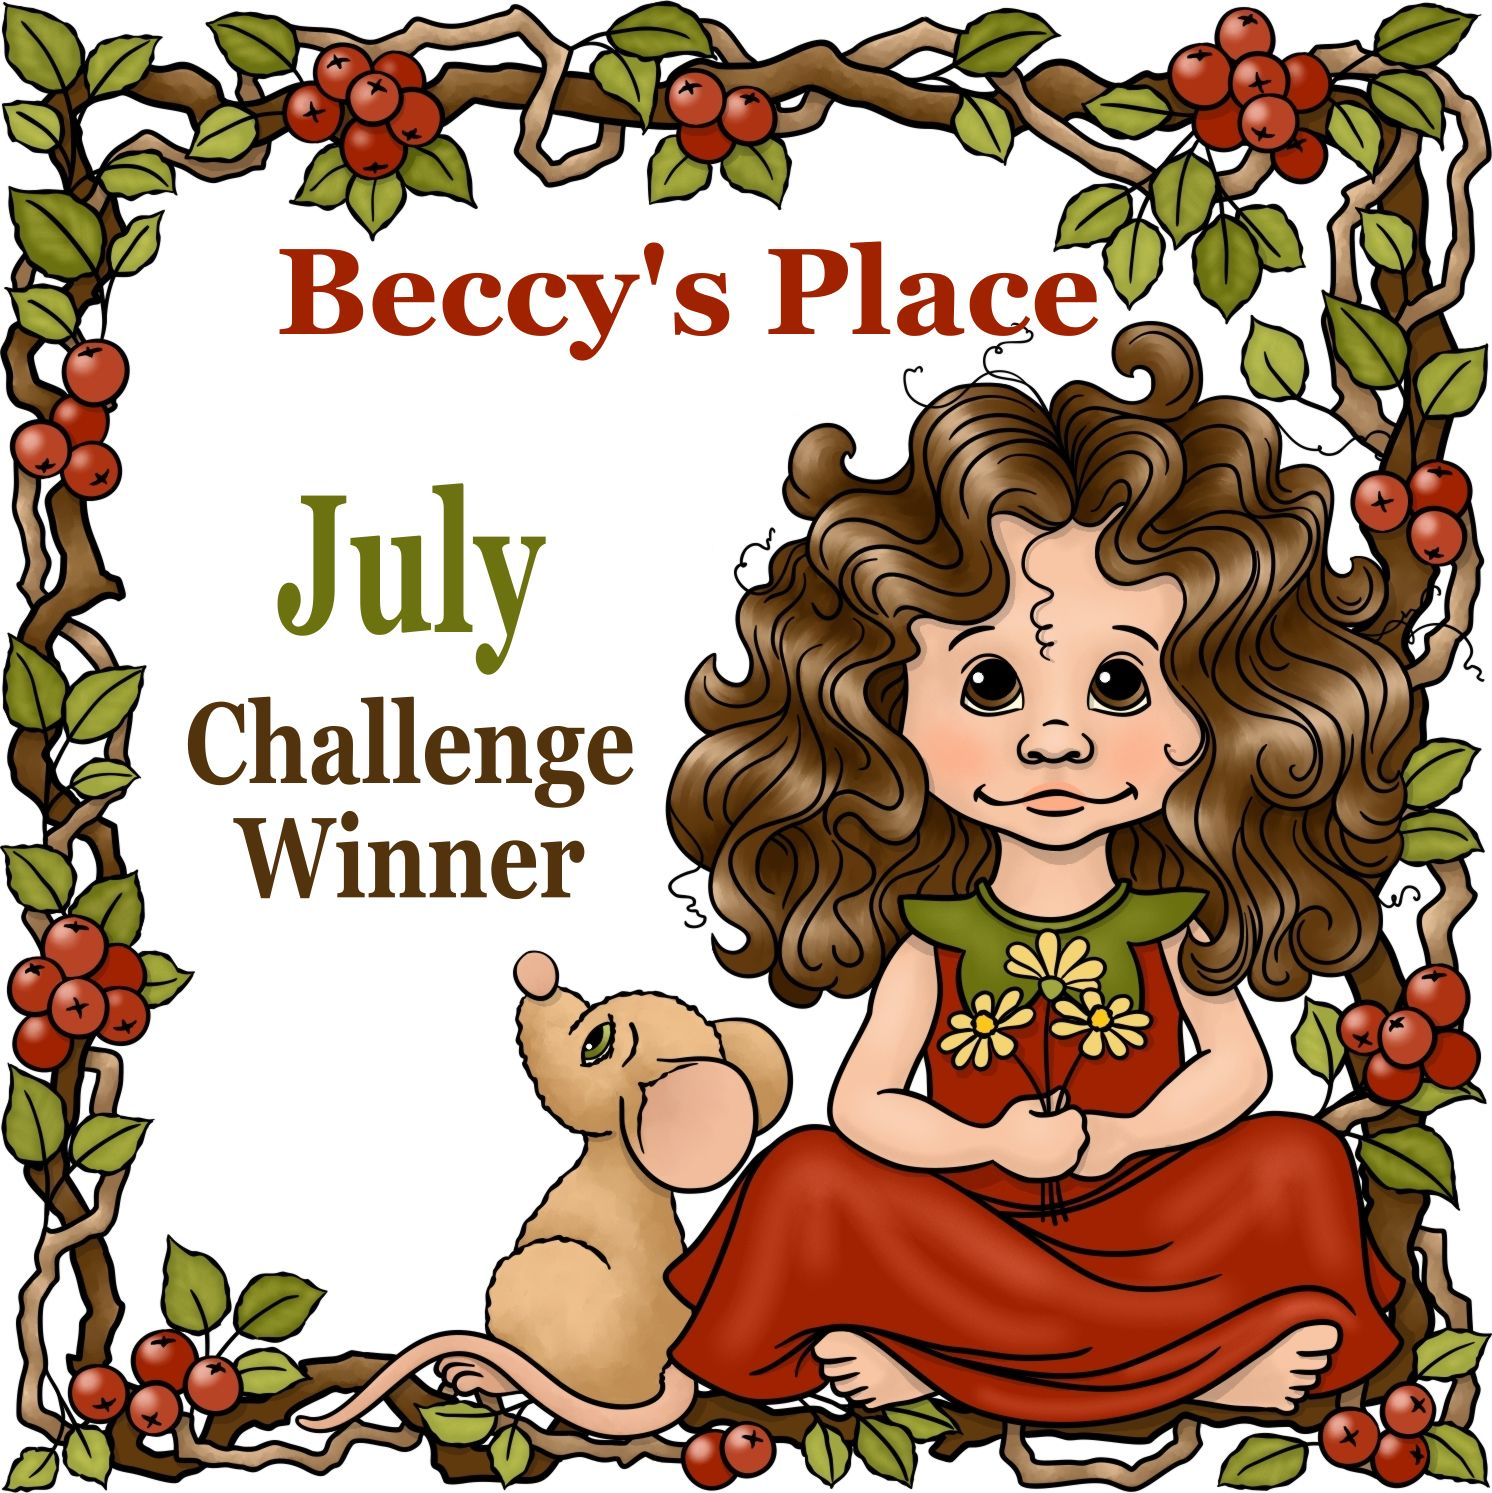 l am a winner from Beccy's Place